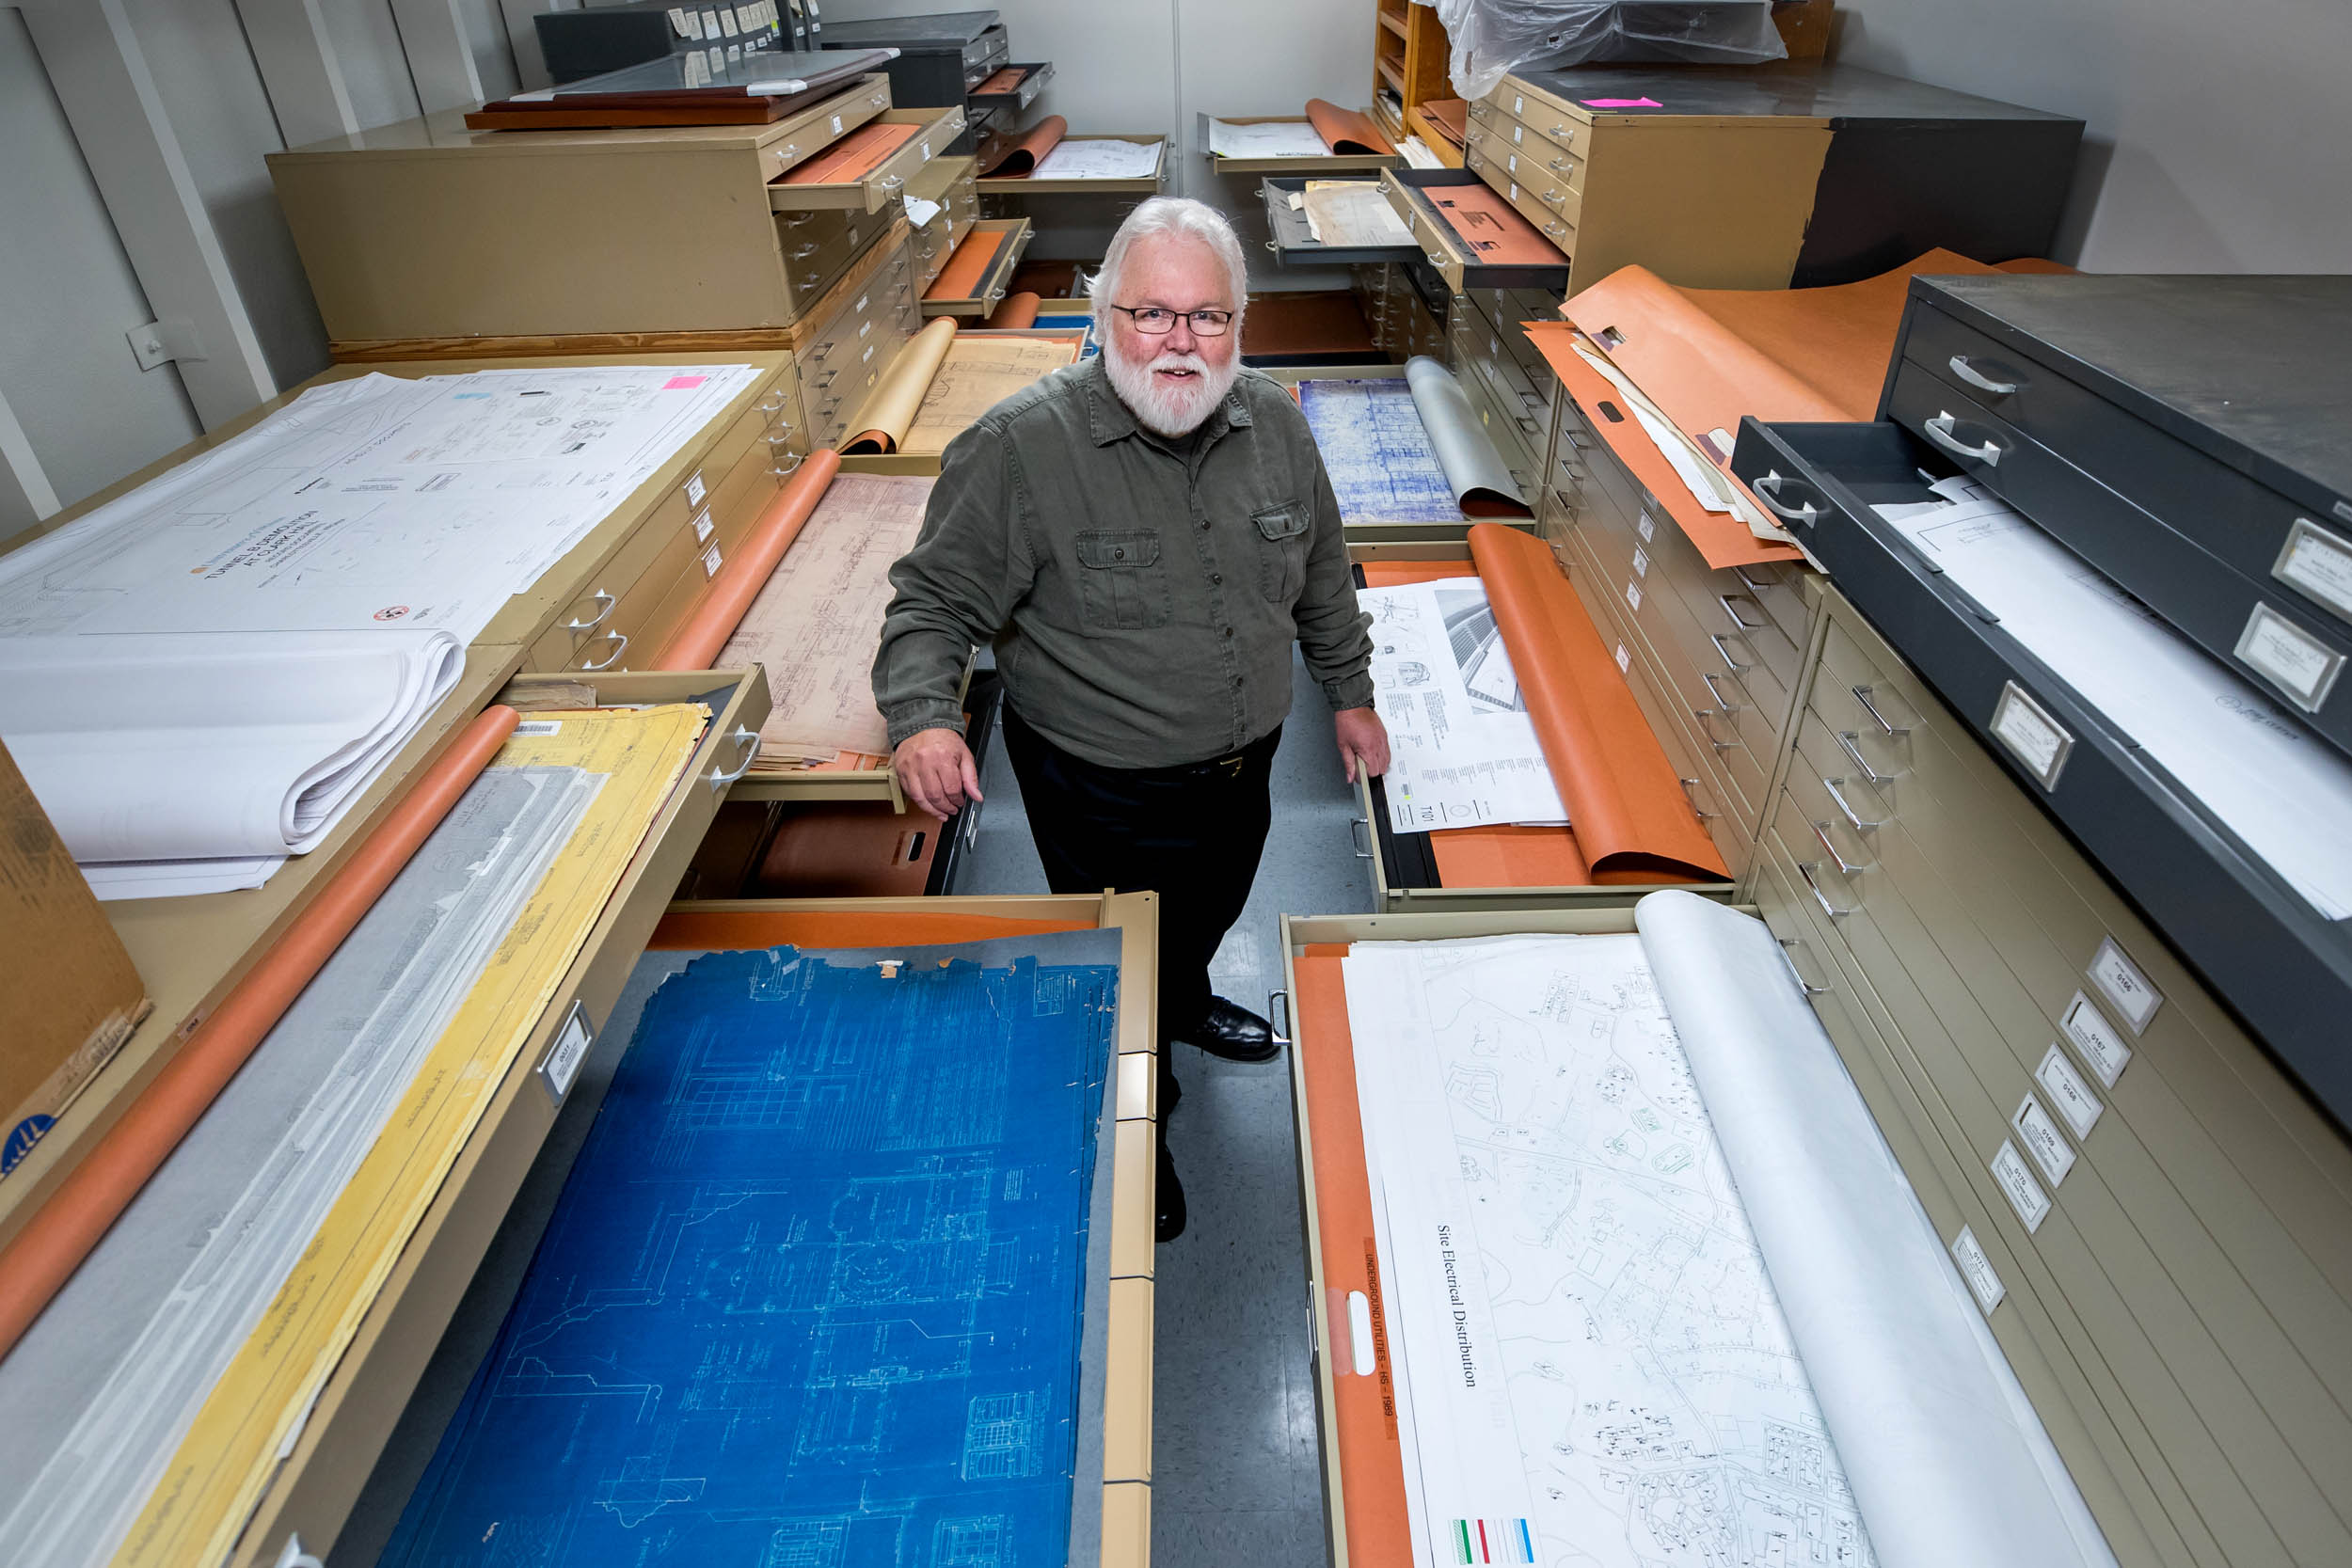 Garth Anderson manages an extensive database of building designs that includes hundreds of years of building plans. (Photo by Sanjay Suchak, University Communications)